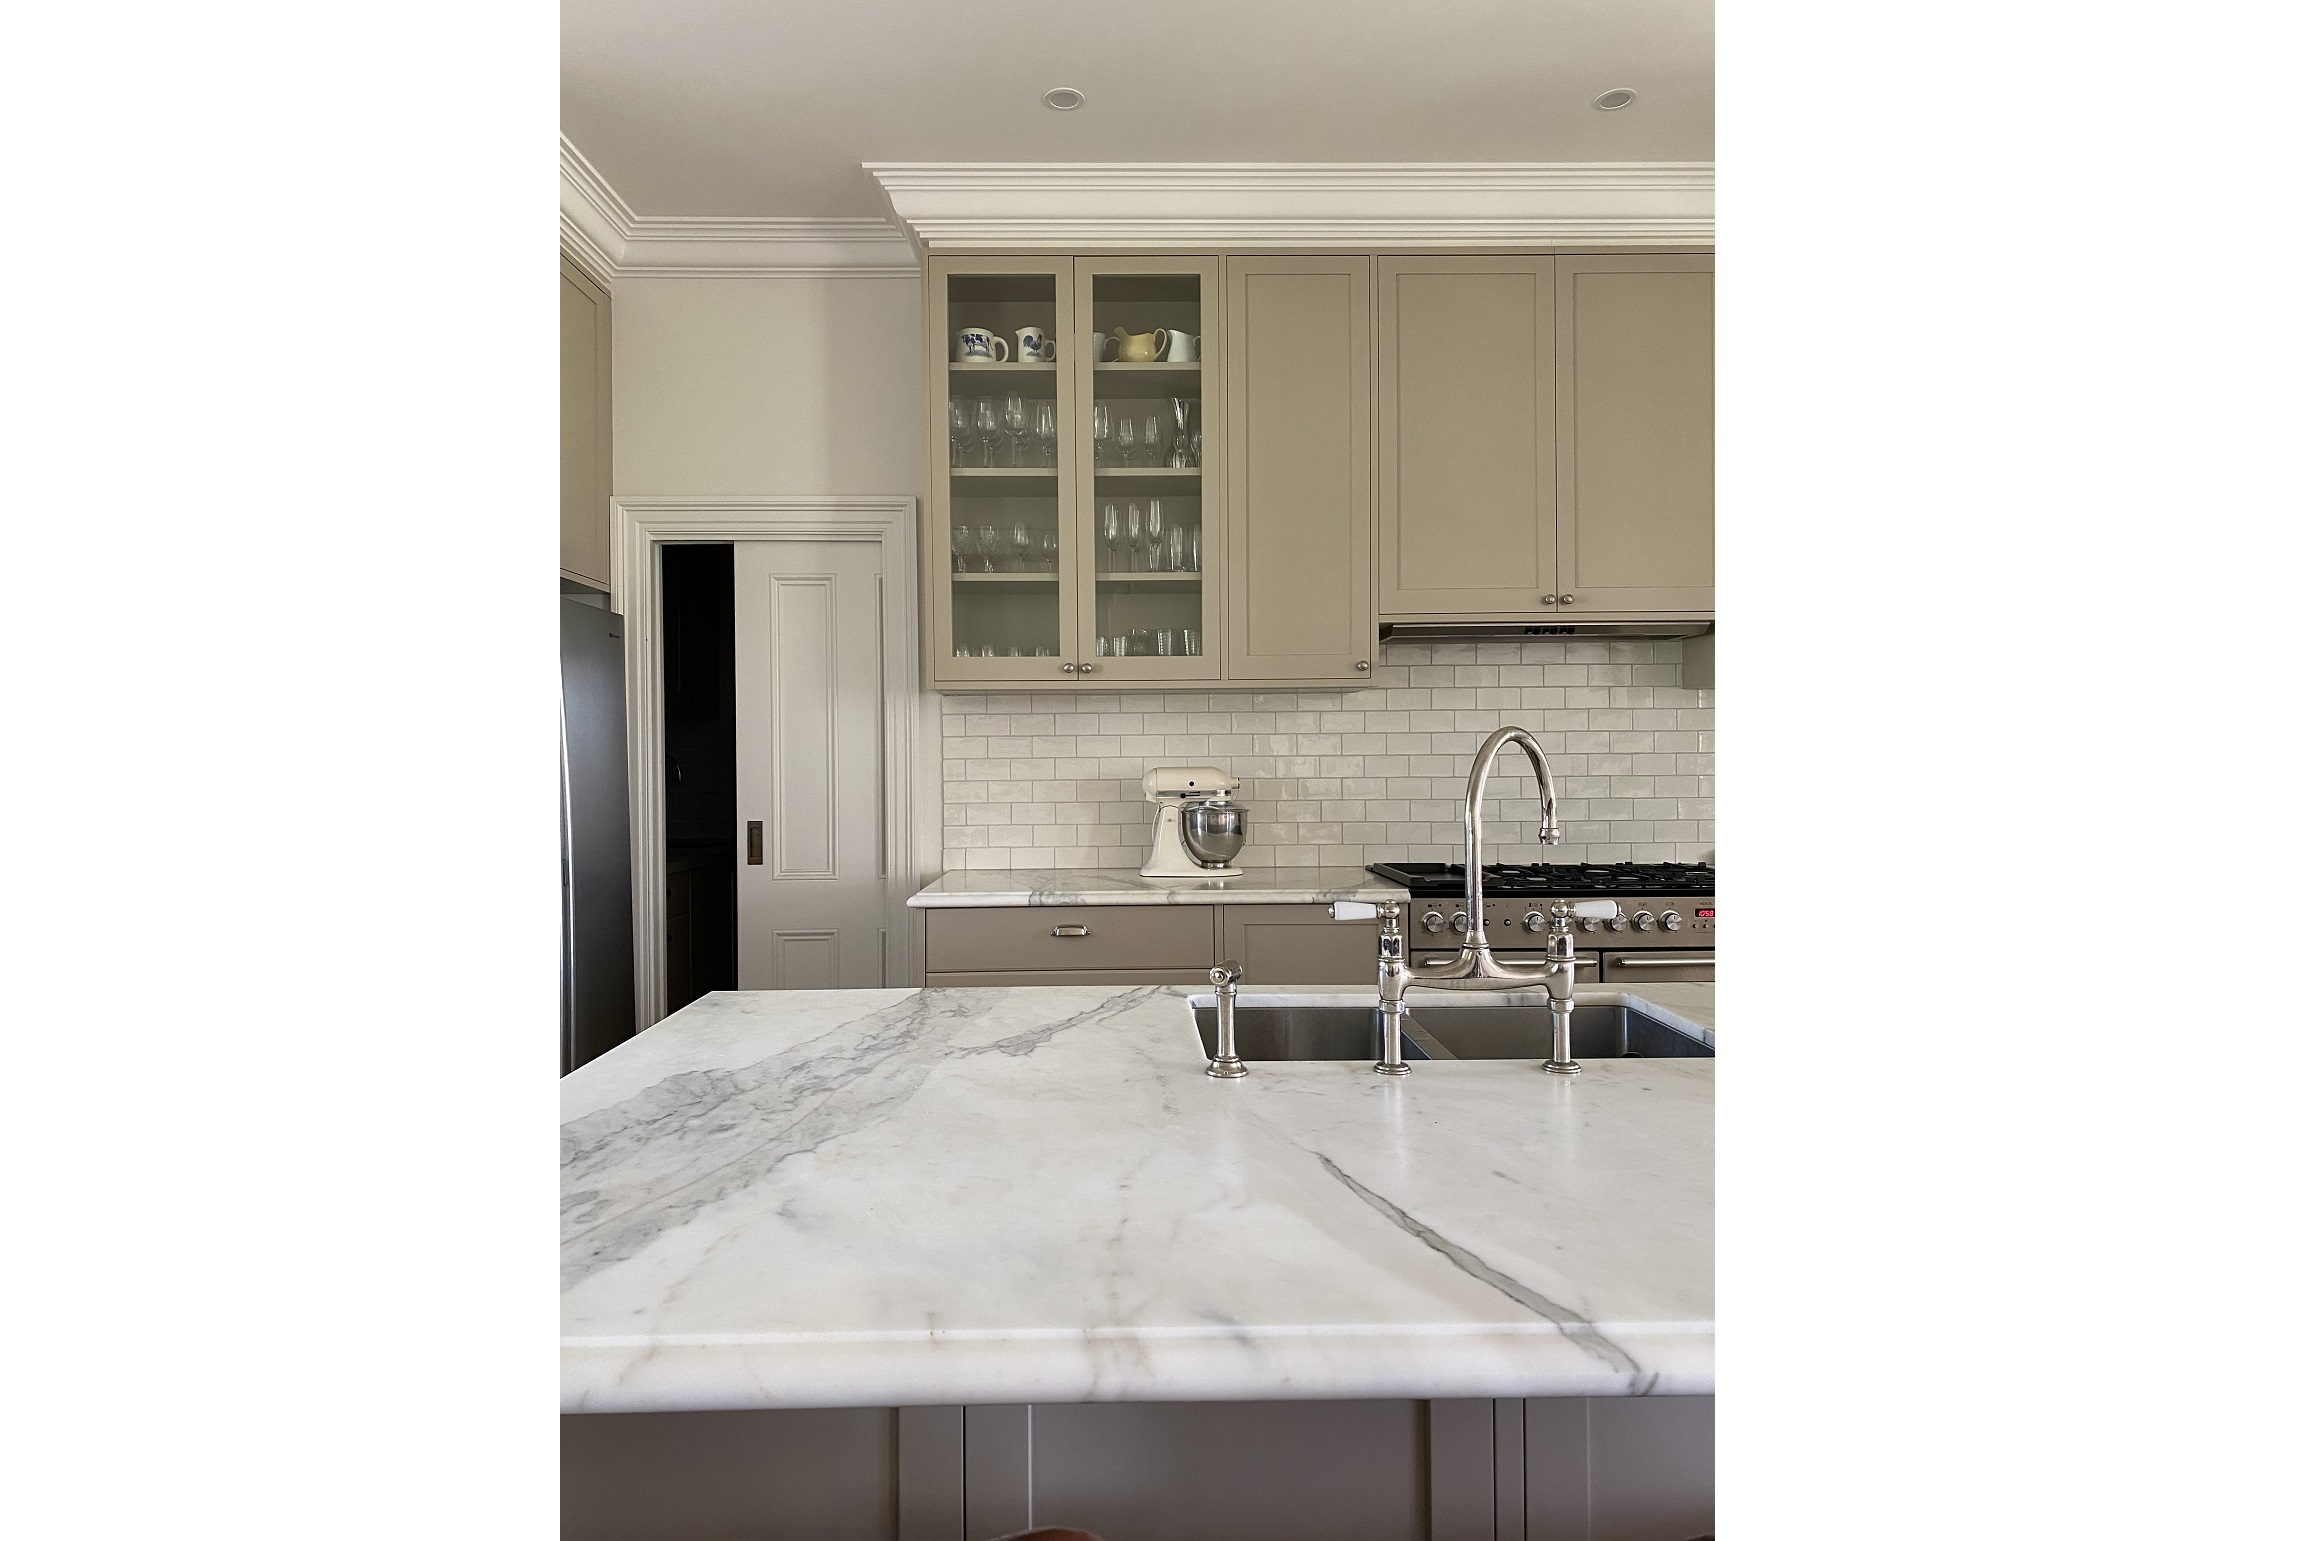 Kitchen Interior Design marble Bench Architecture